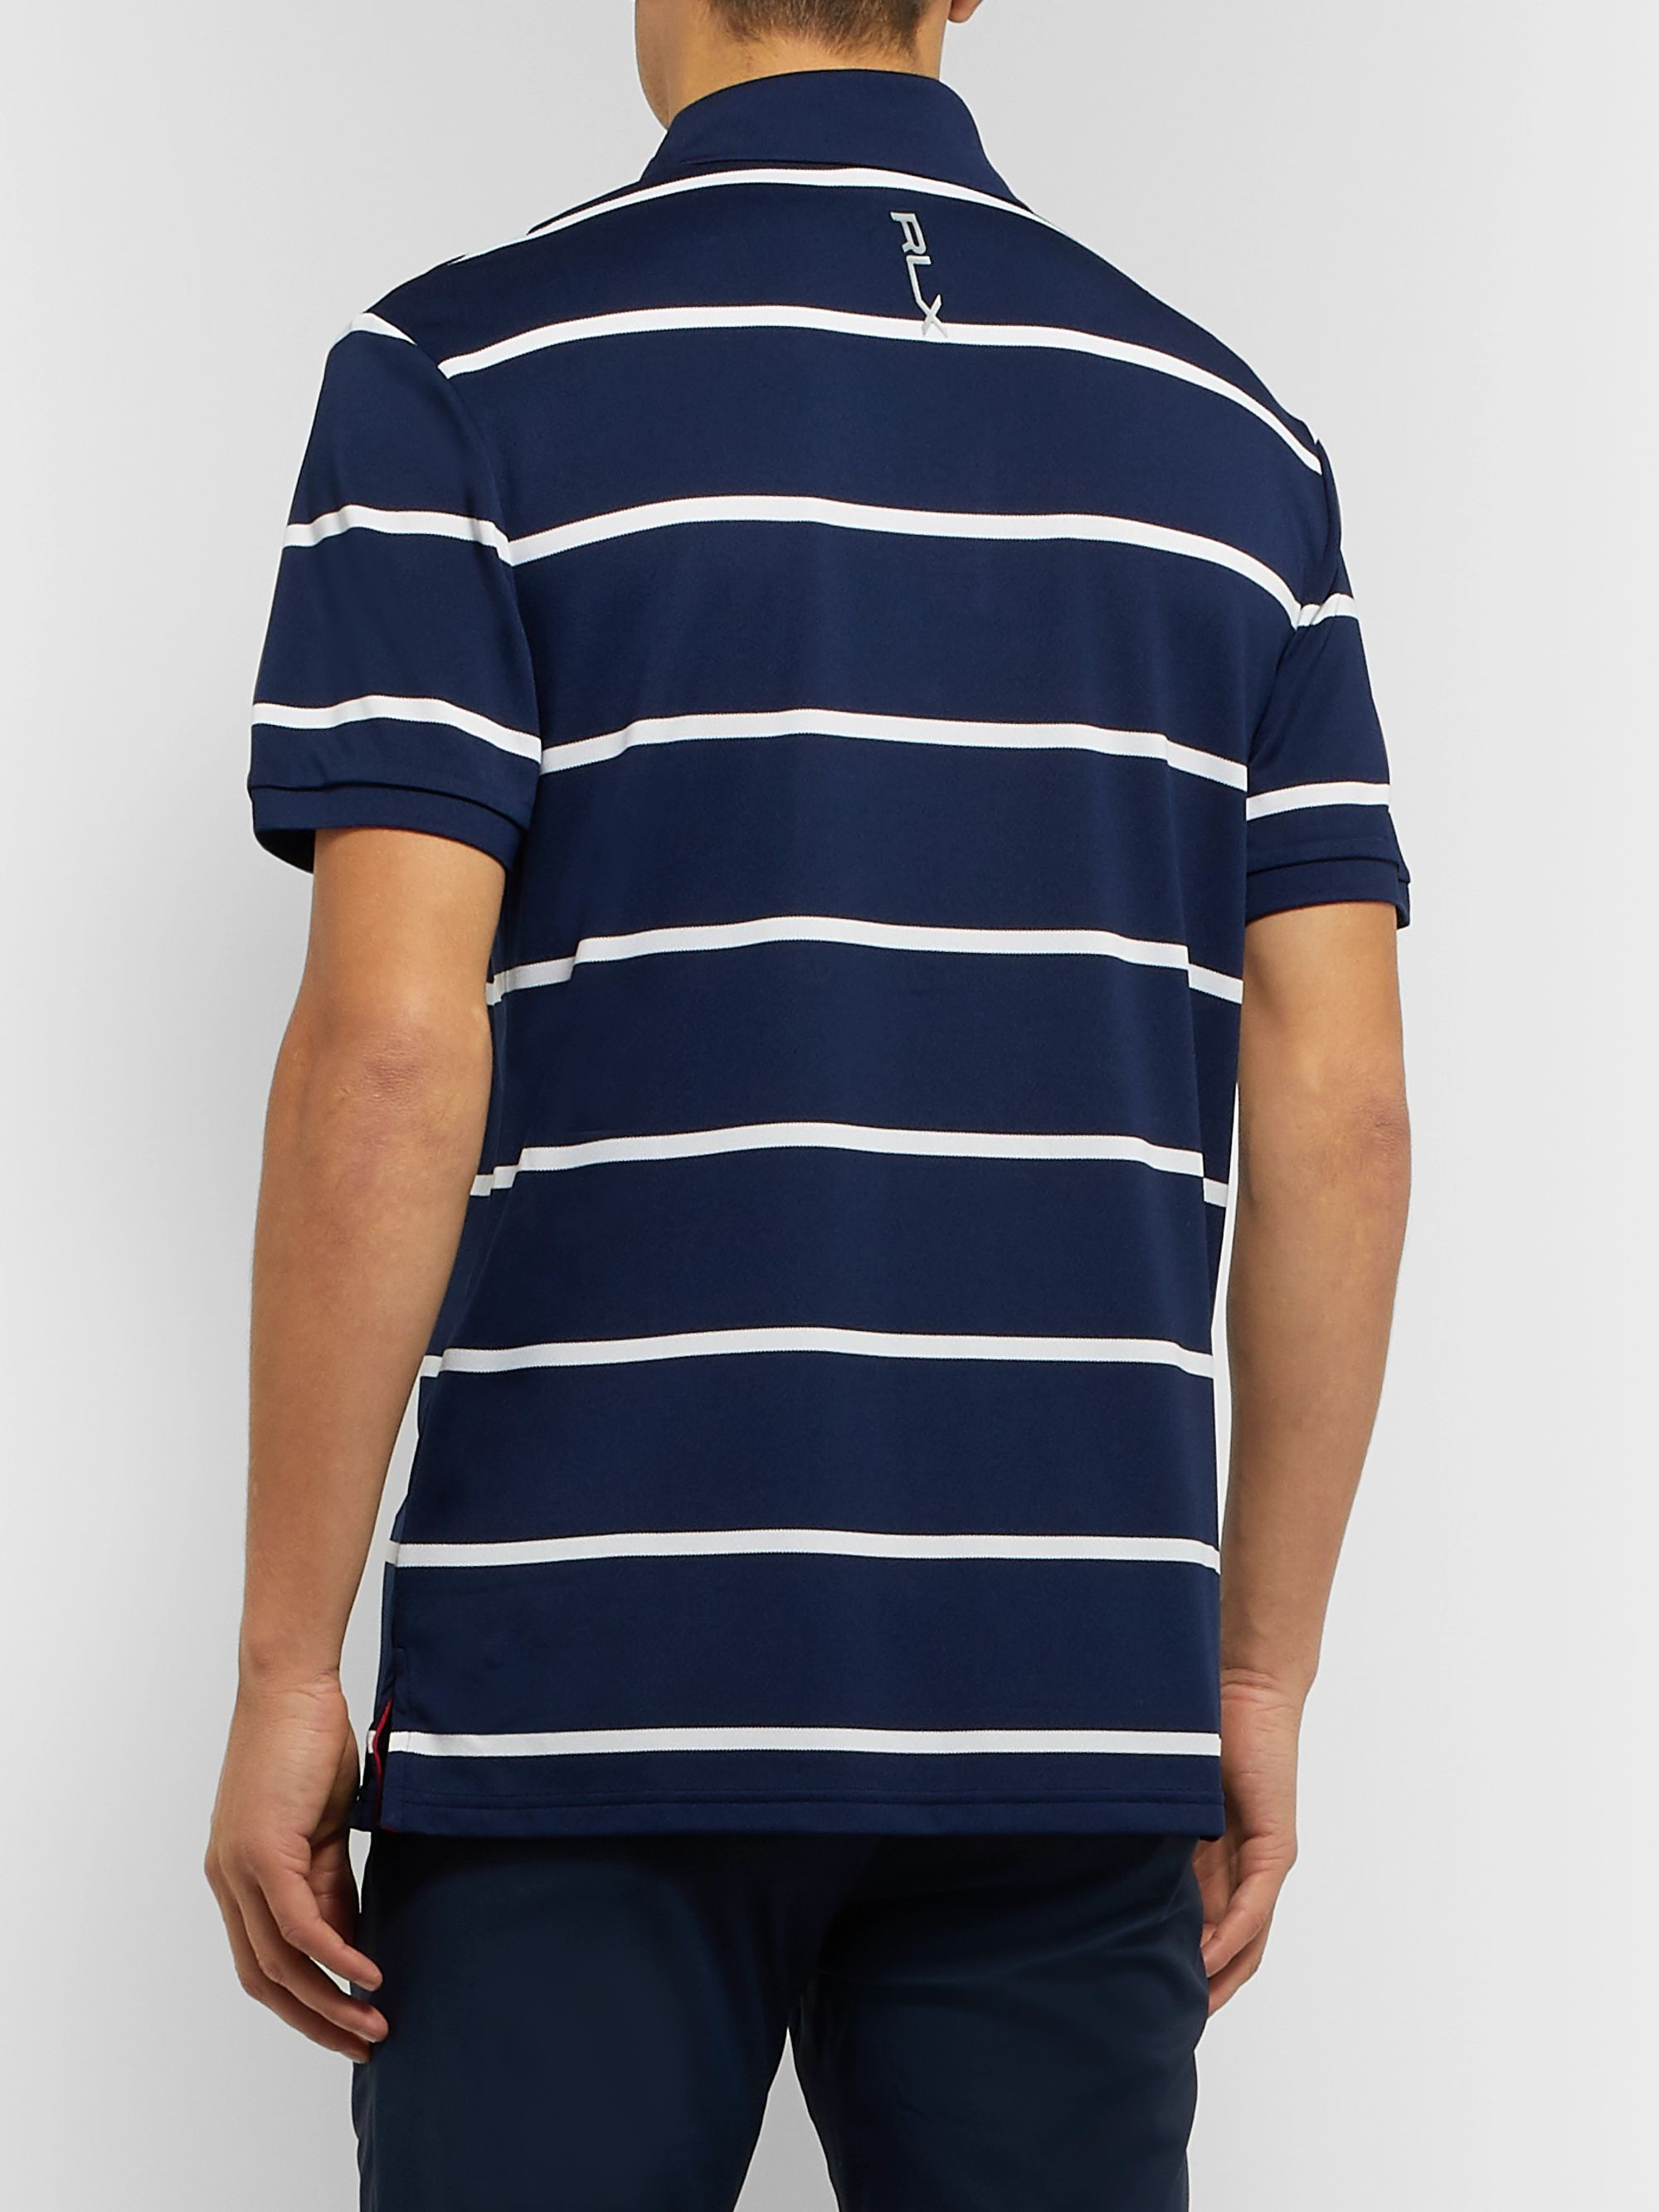 RLX Ralph Lauren Striped Tech-Piqué Golf Polo Shirt